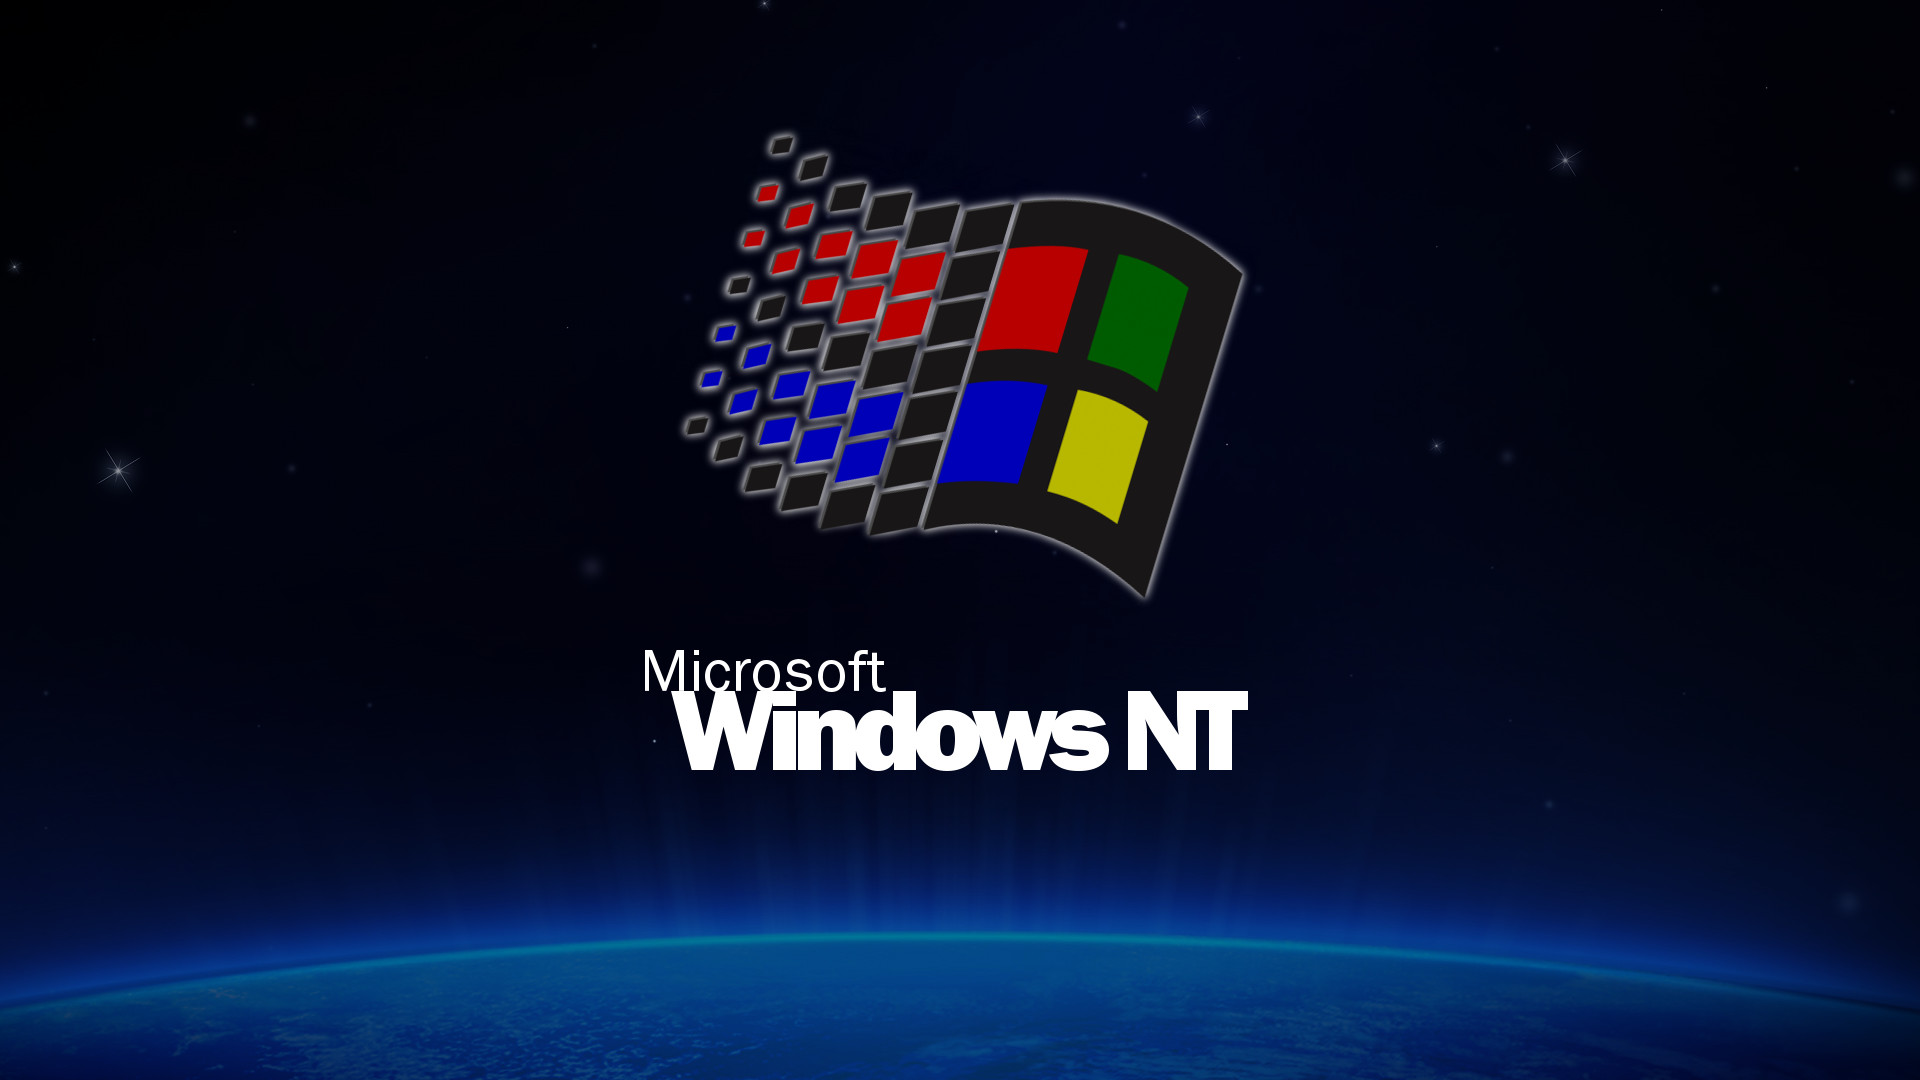 3d Wallpapers For Windows 8 Hd Free Download Windows Nt 40 Wallpaper 73 Images